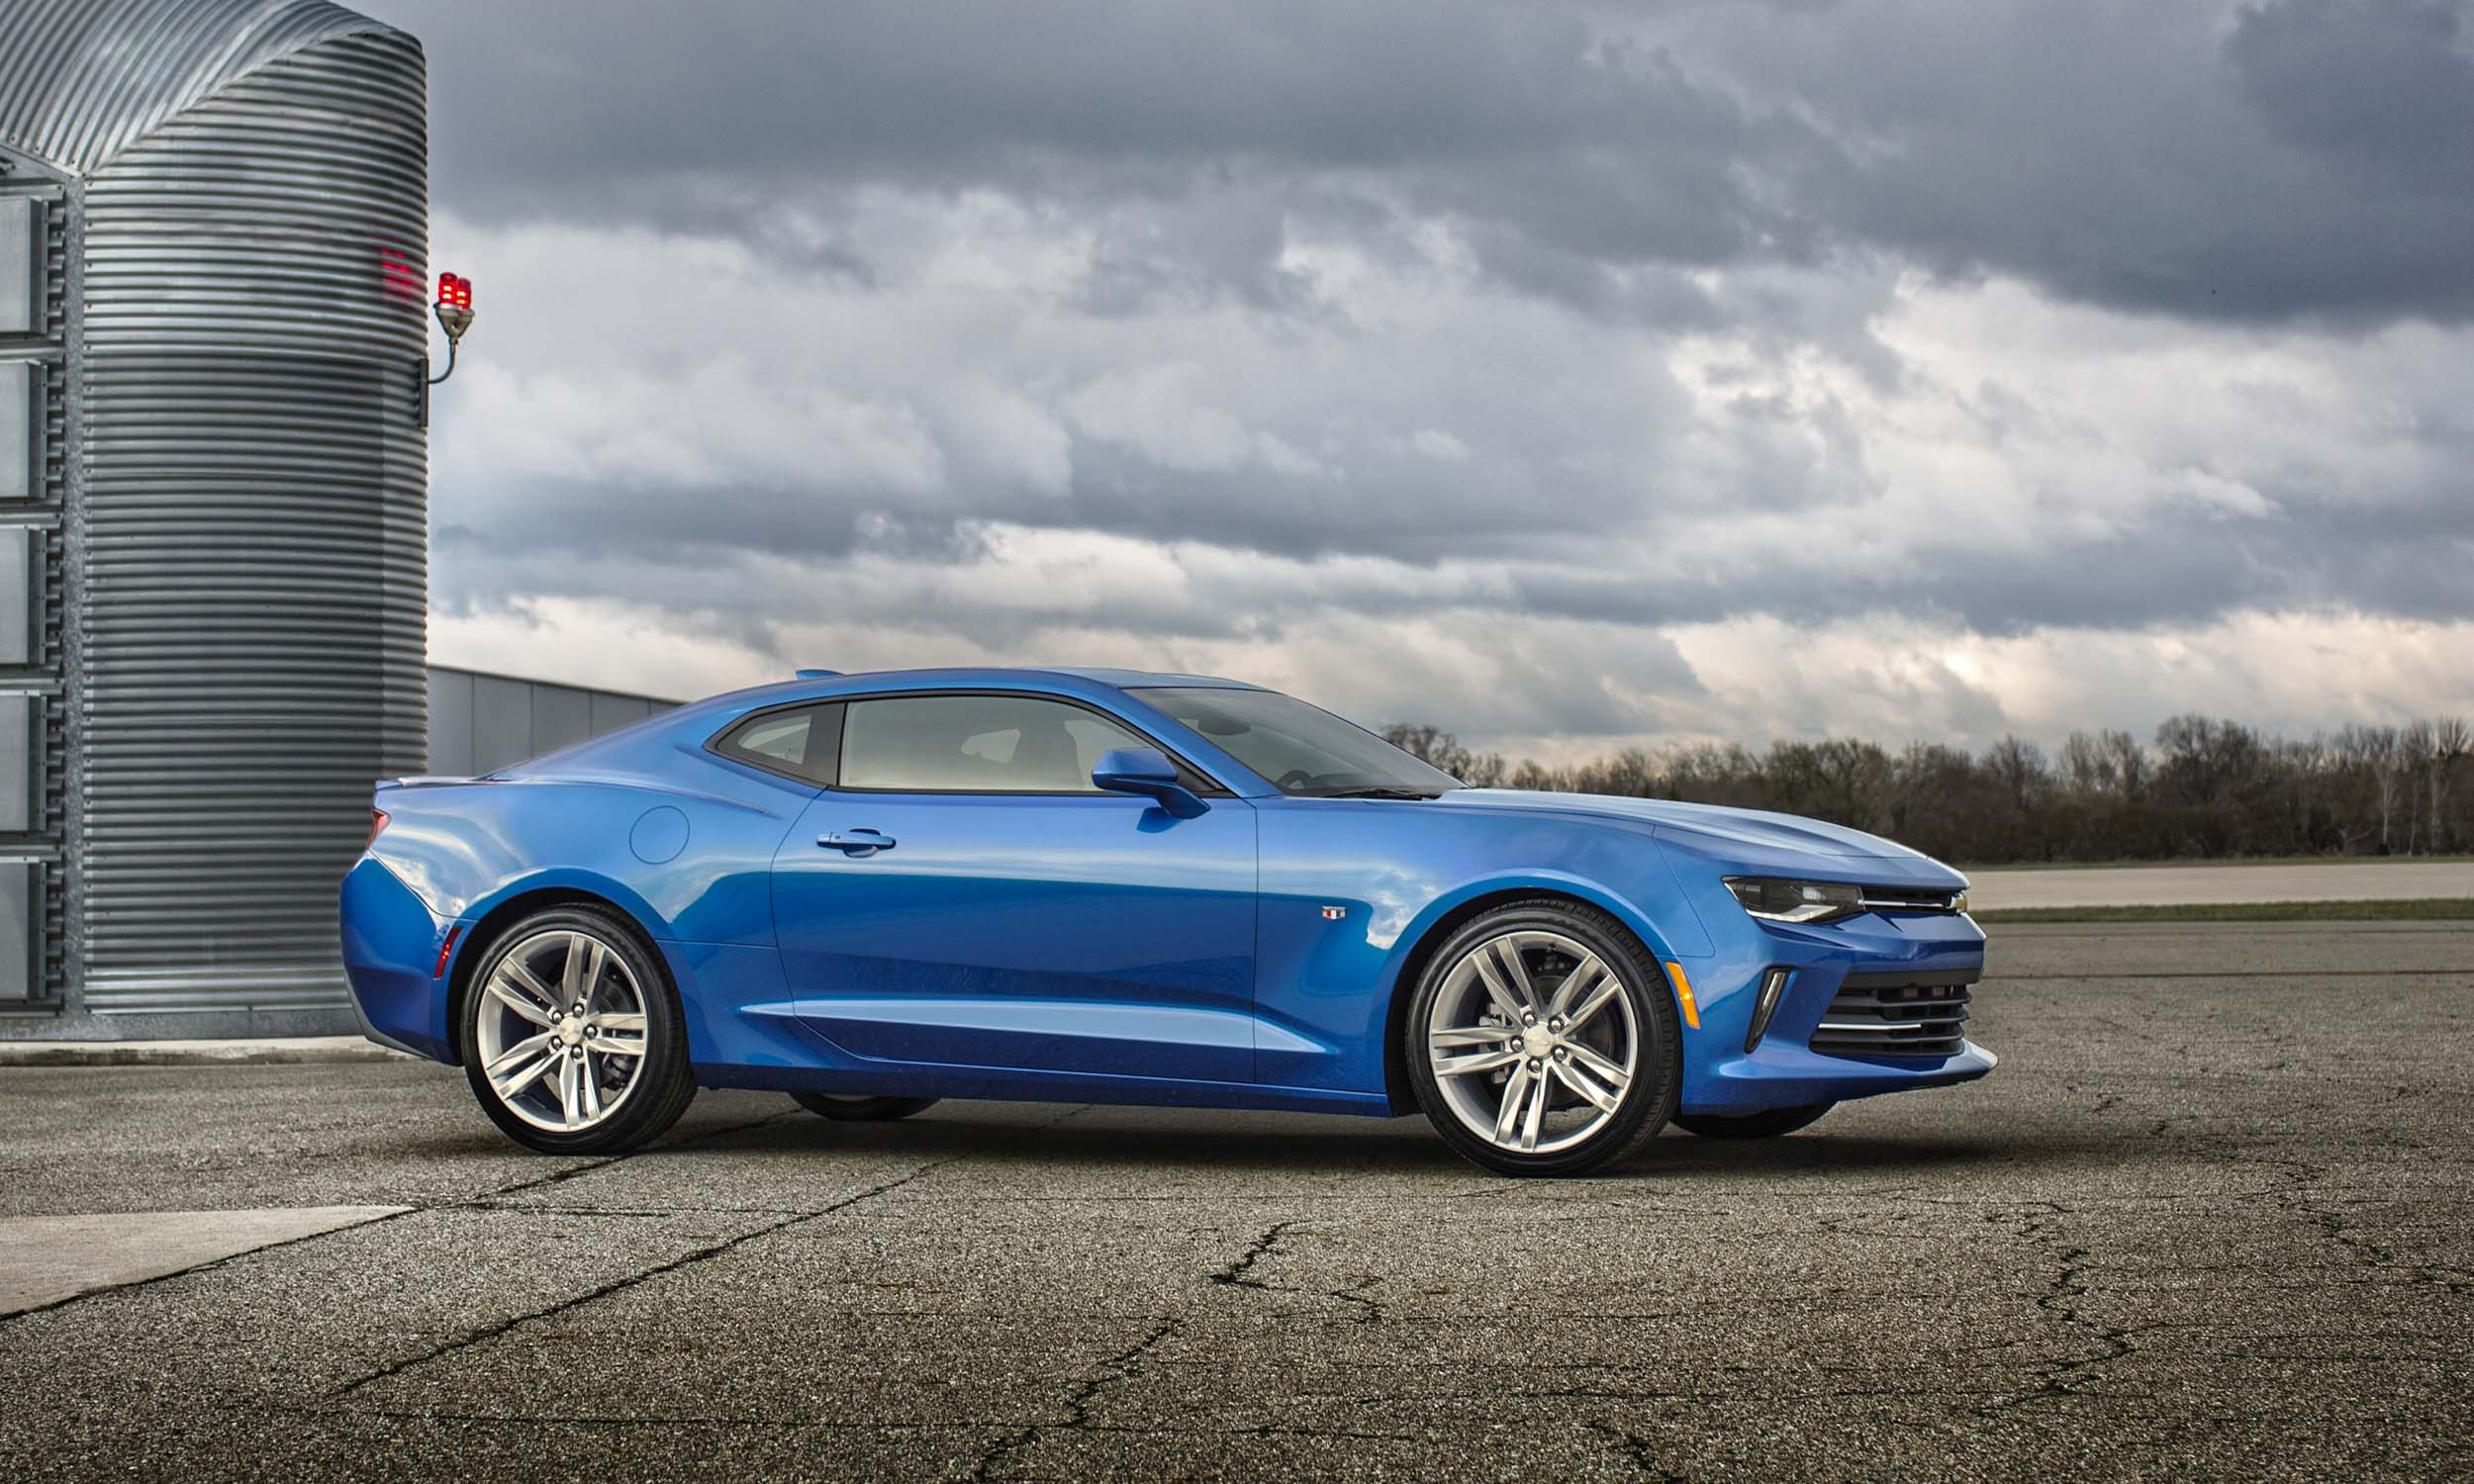 2016 chevrolet camaro first drive review autonxt. Black Bedroom Furniture Sets. Home Design Ideas